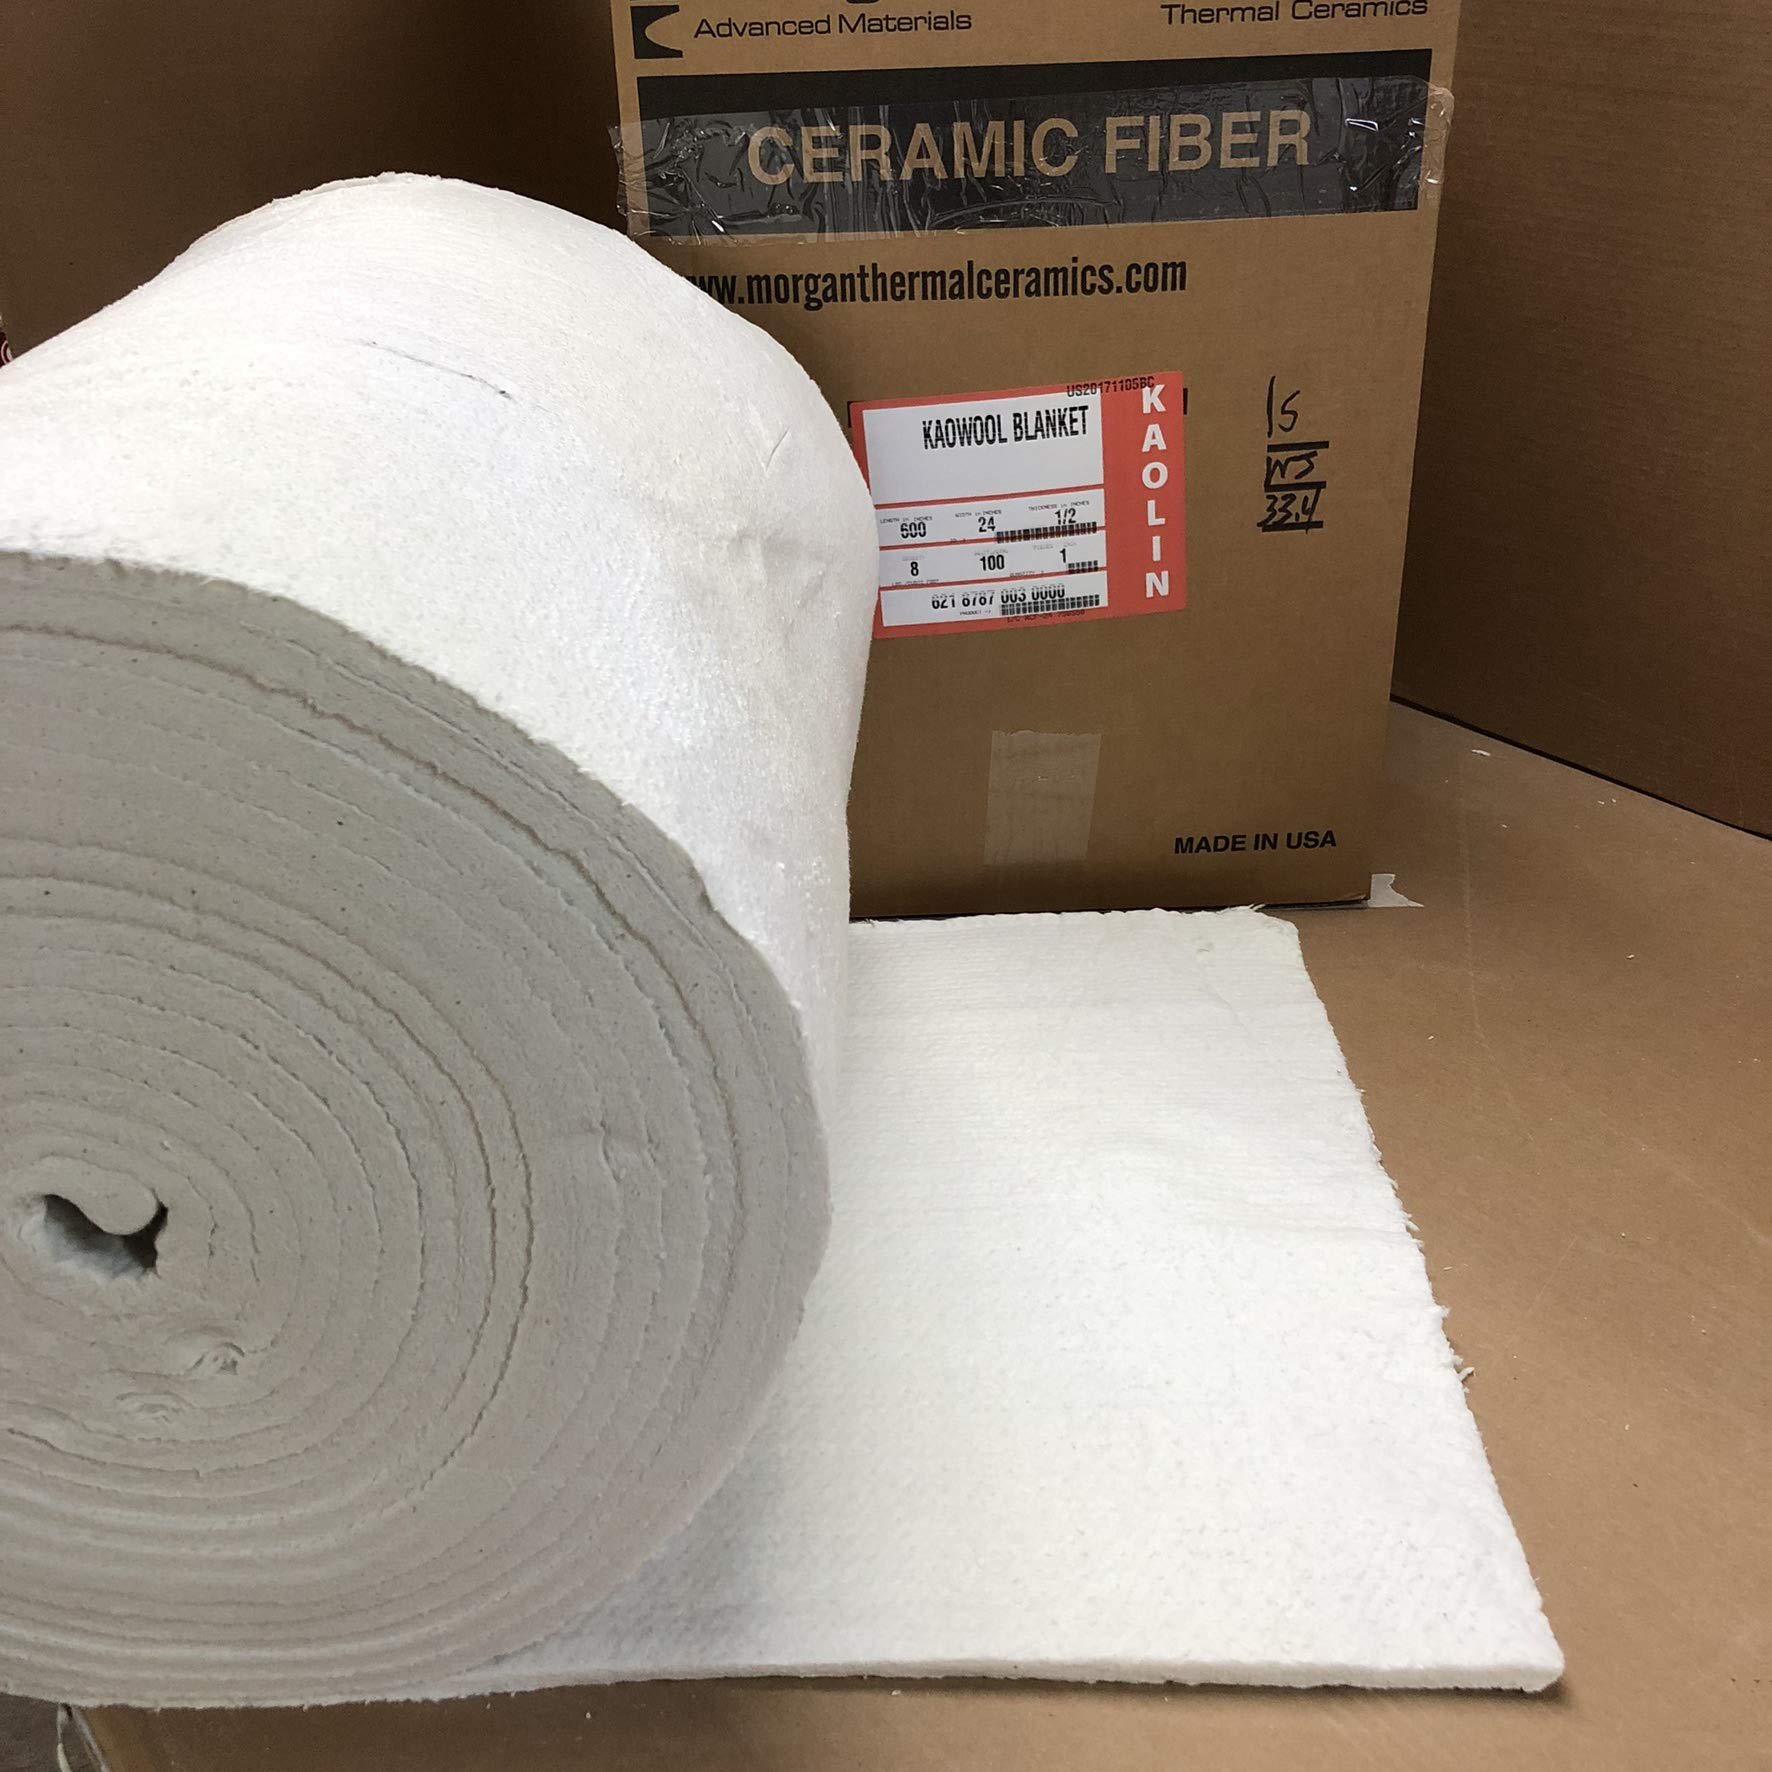 Lynn Manufacturing 1/2'' Thick, Kaowool Plus Blanket, Morgan Thermal Ceramics, 2100F Rated, 8 Lb. Density, 24'' Wide, 50 Ft. Long by Lynn Manufacturing